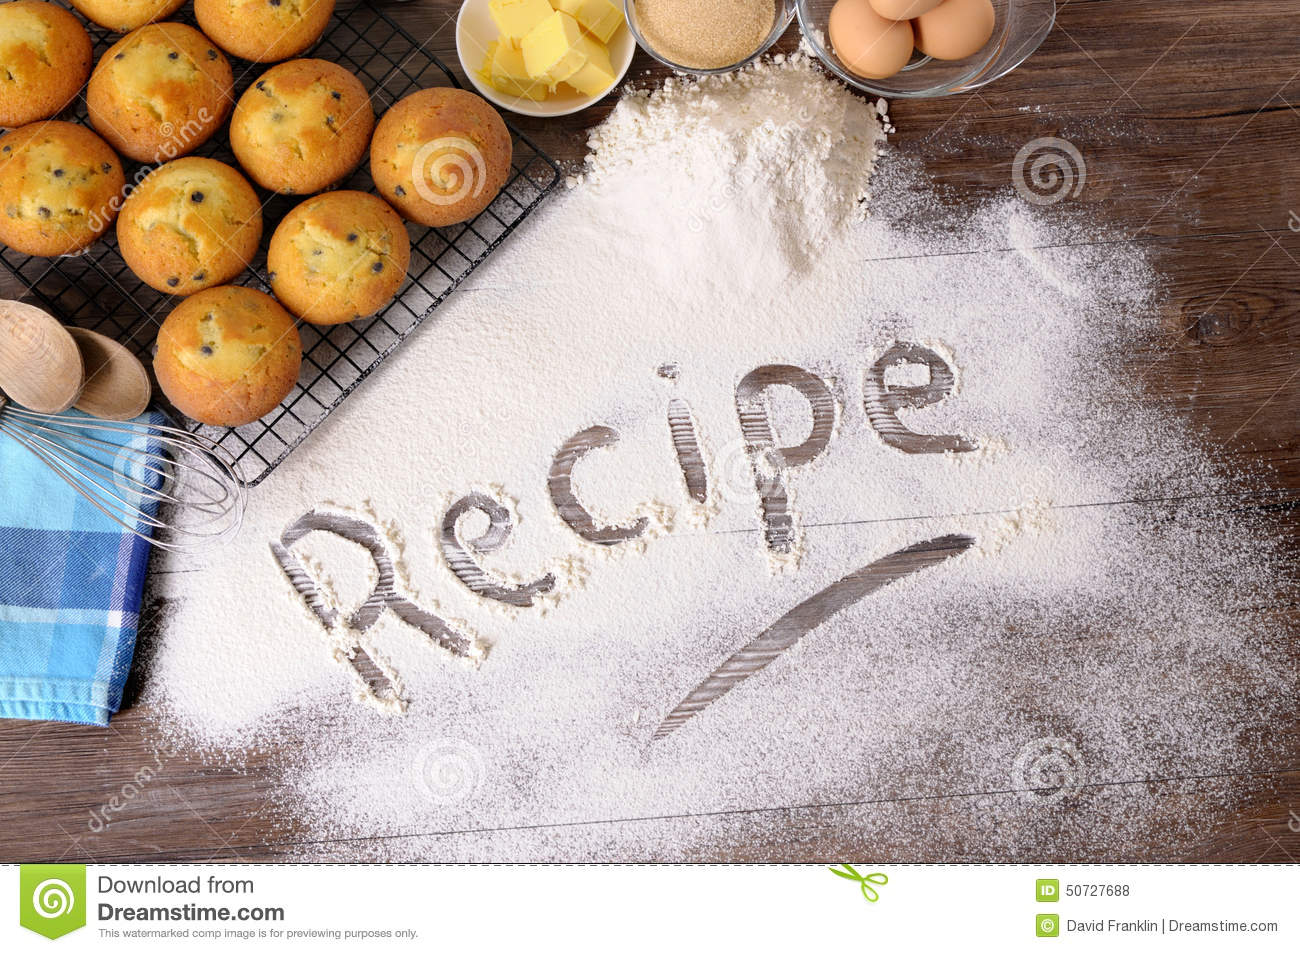 Cake Recipes In Written: Cake Baking Ingredients, Recipe Word Written In White